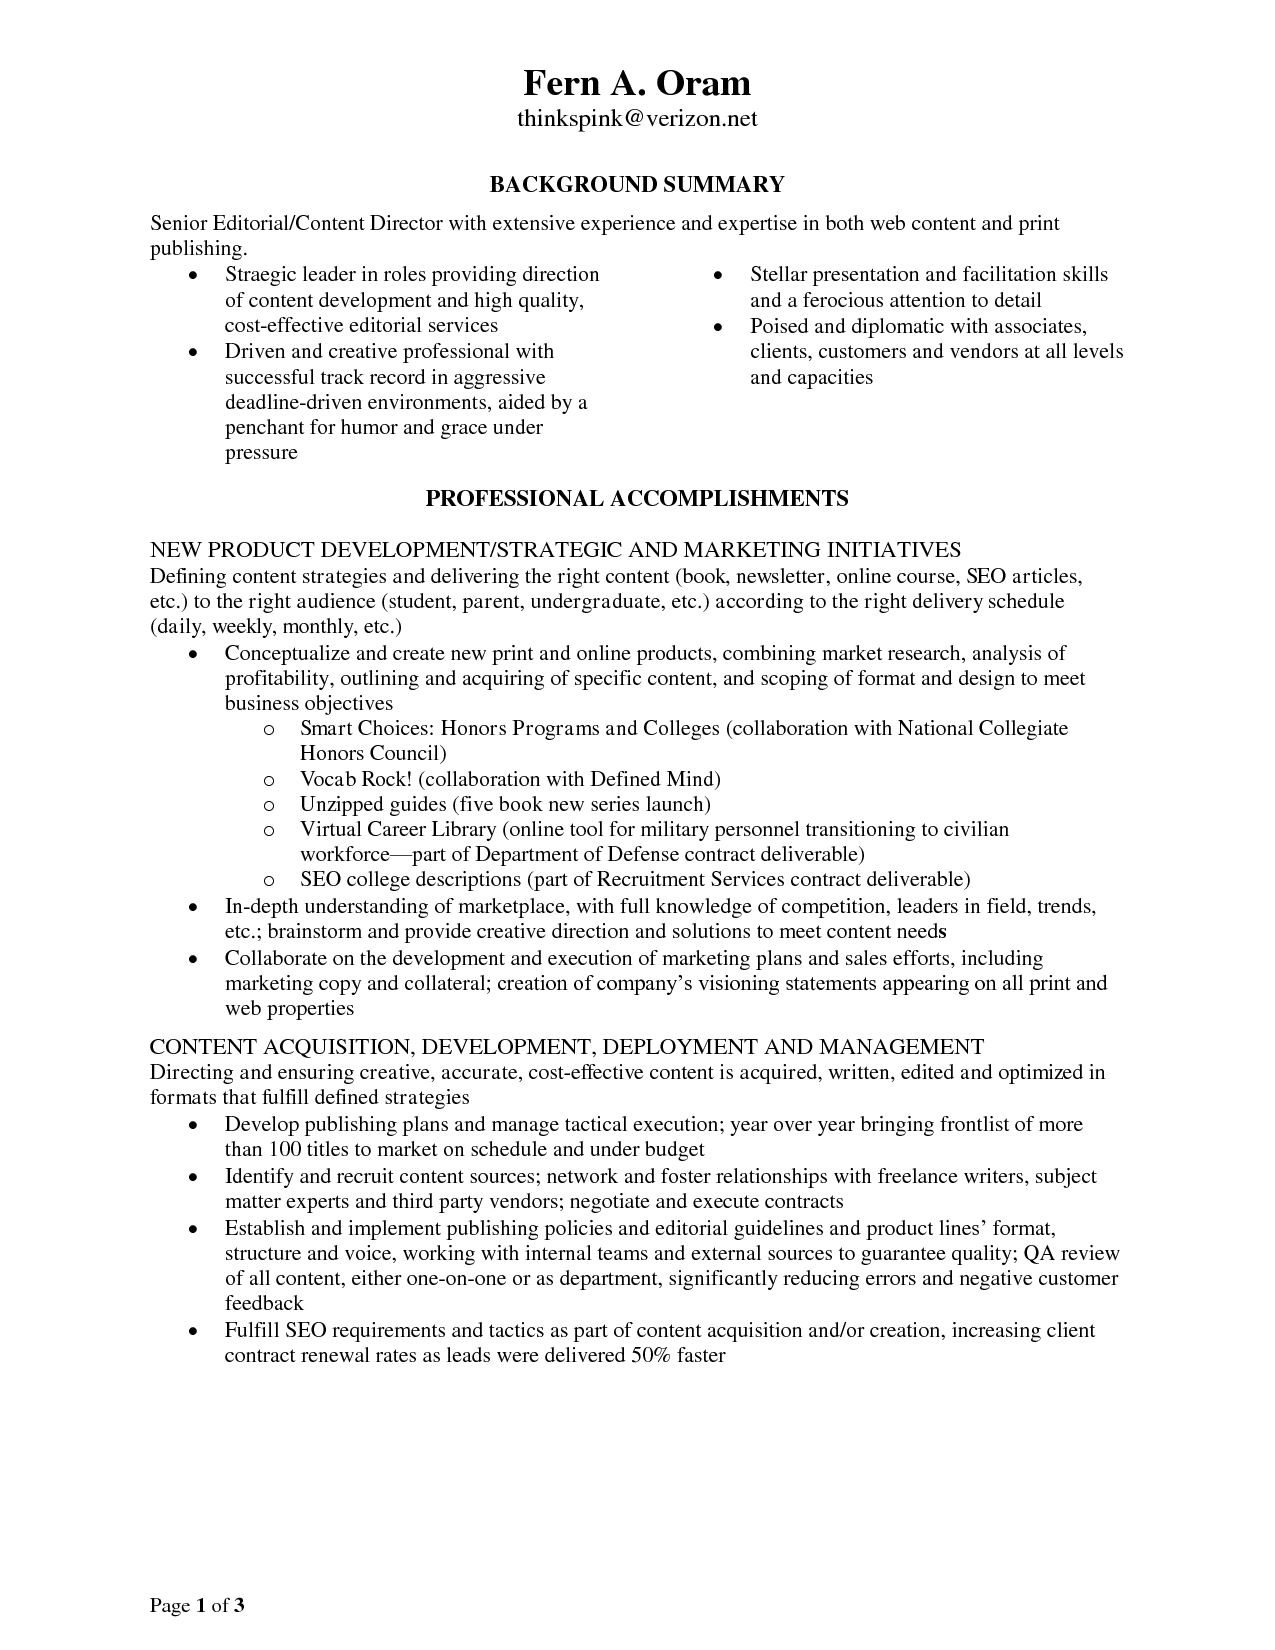 Template For Curriculum Vitae Monster Resume Templates Free Monster Resume Templates Free